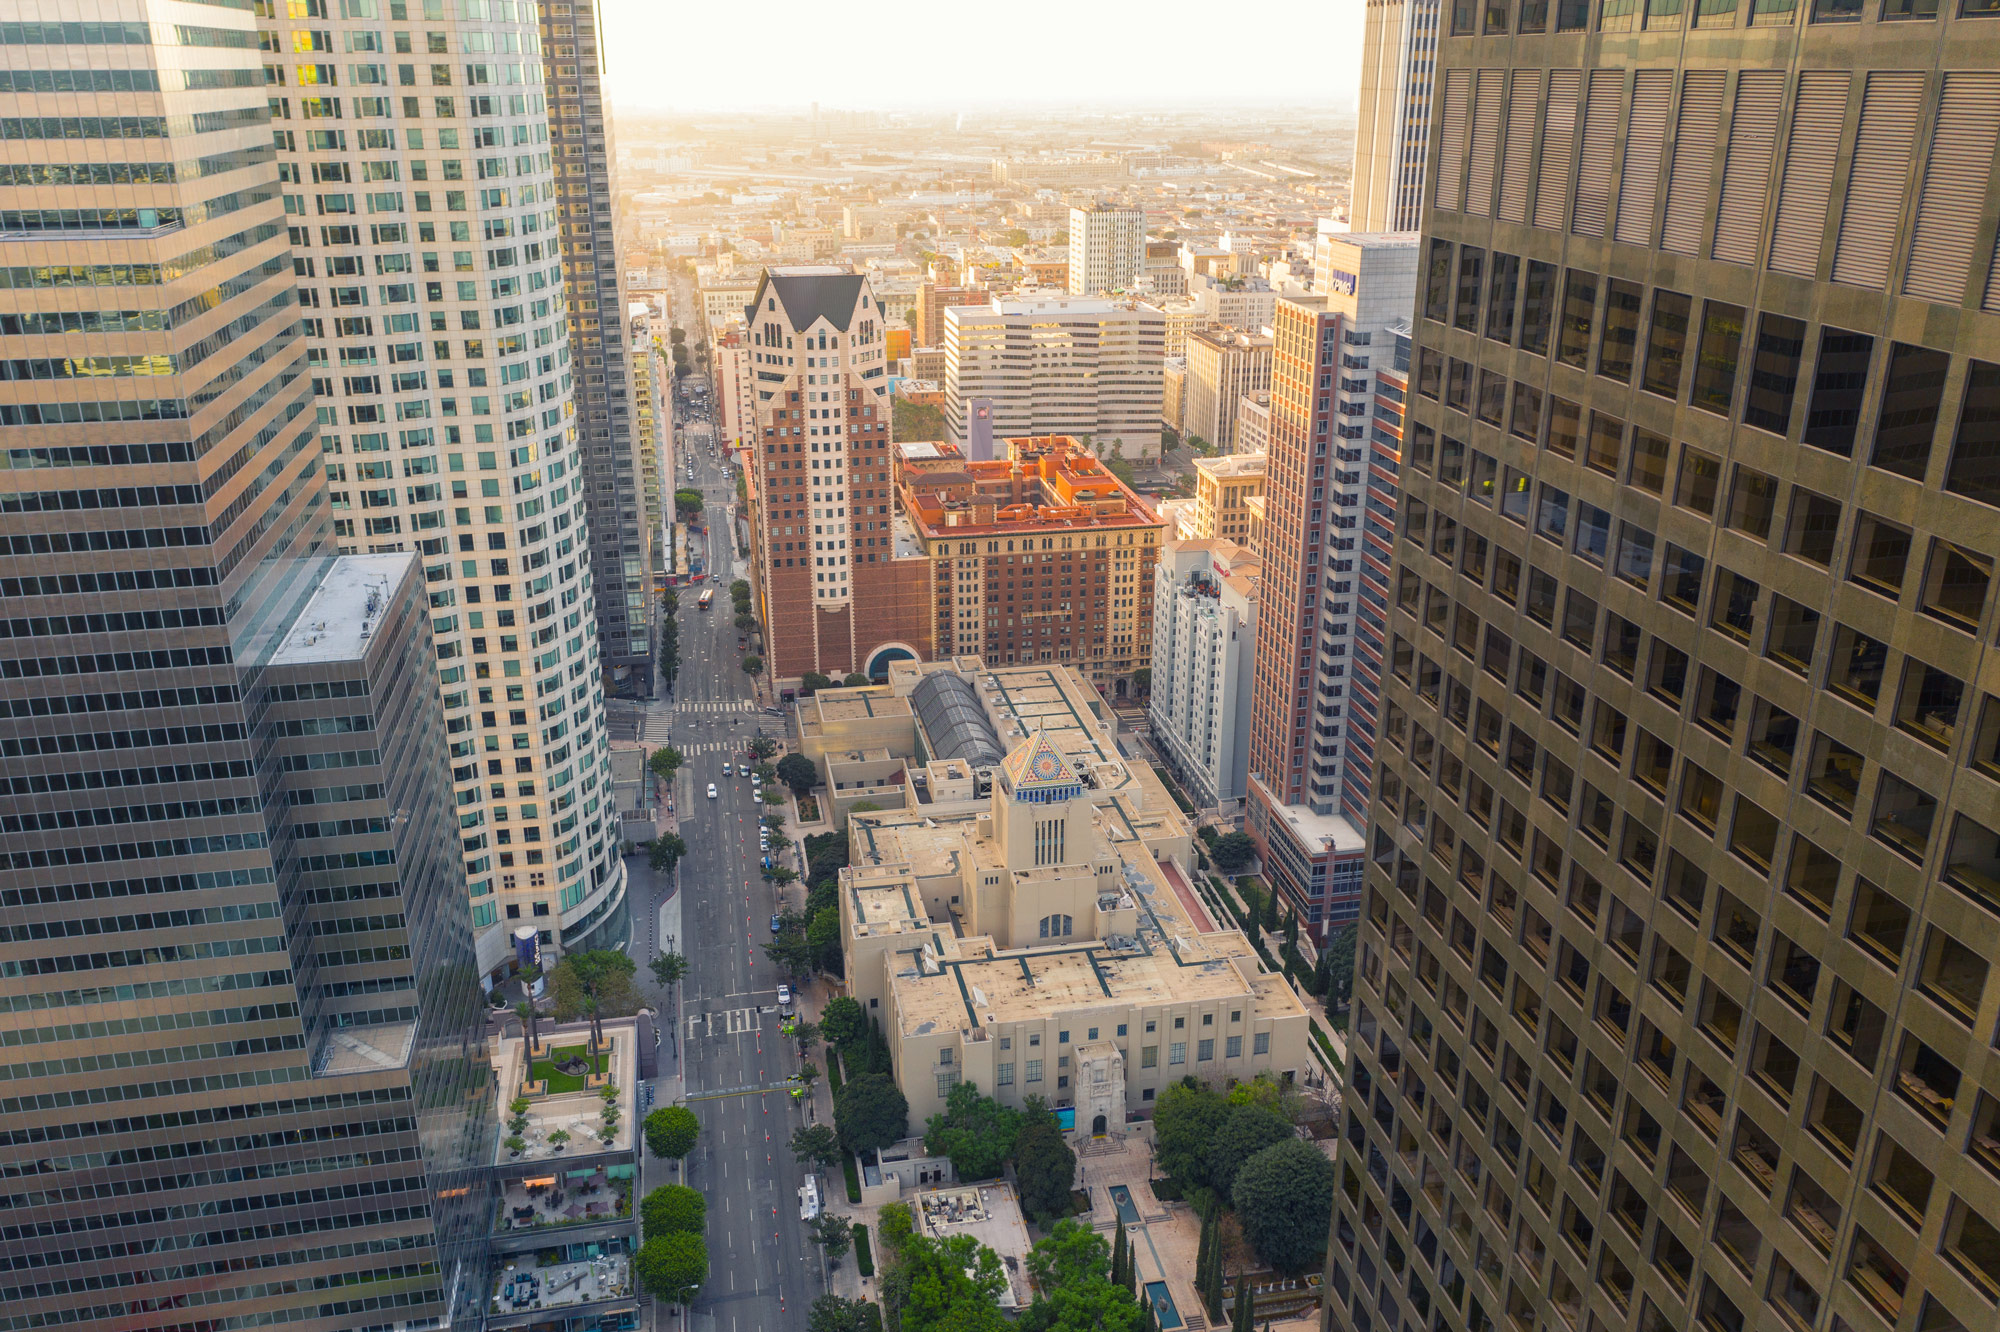 Aerial View on LA Public Library, Downtown Los Angeles